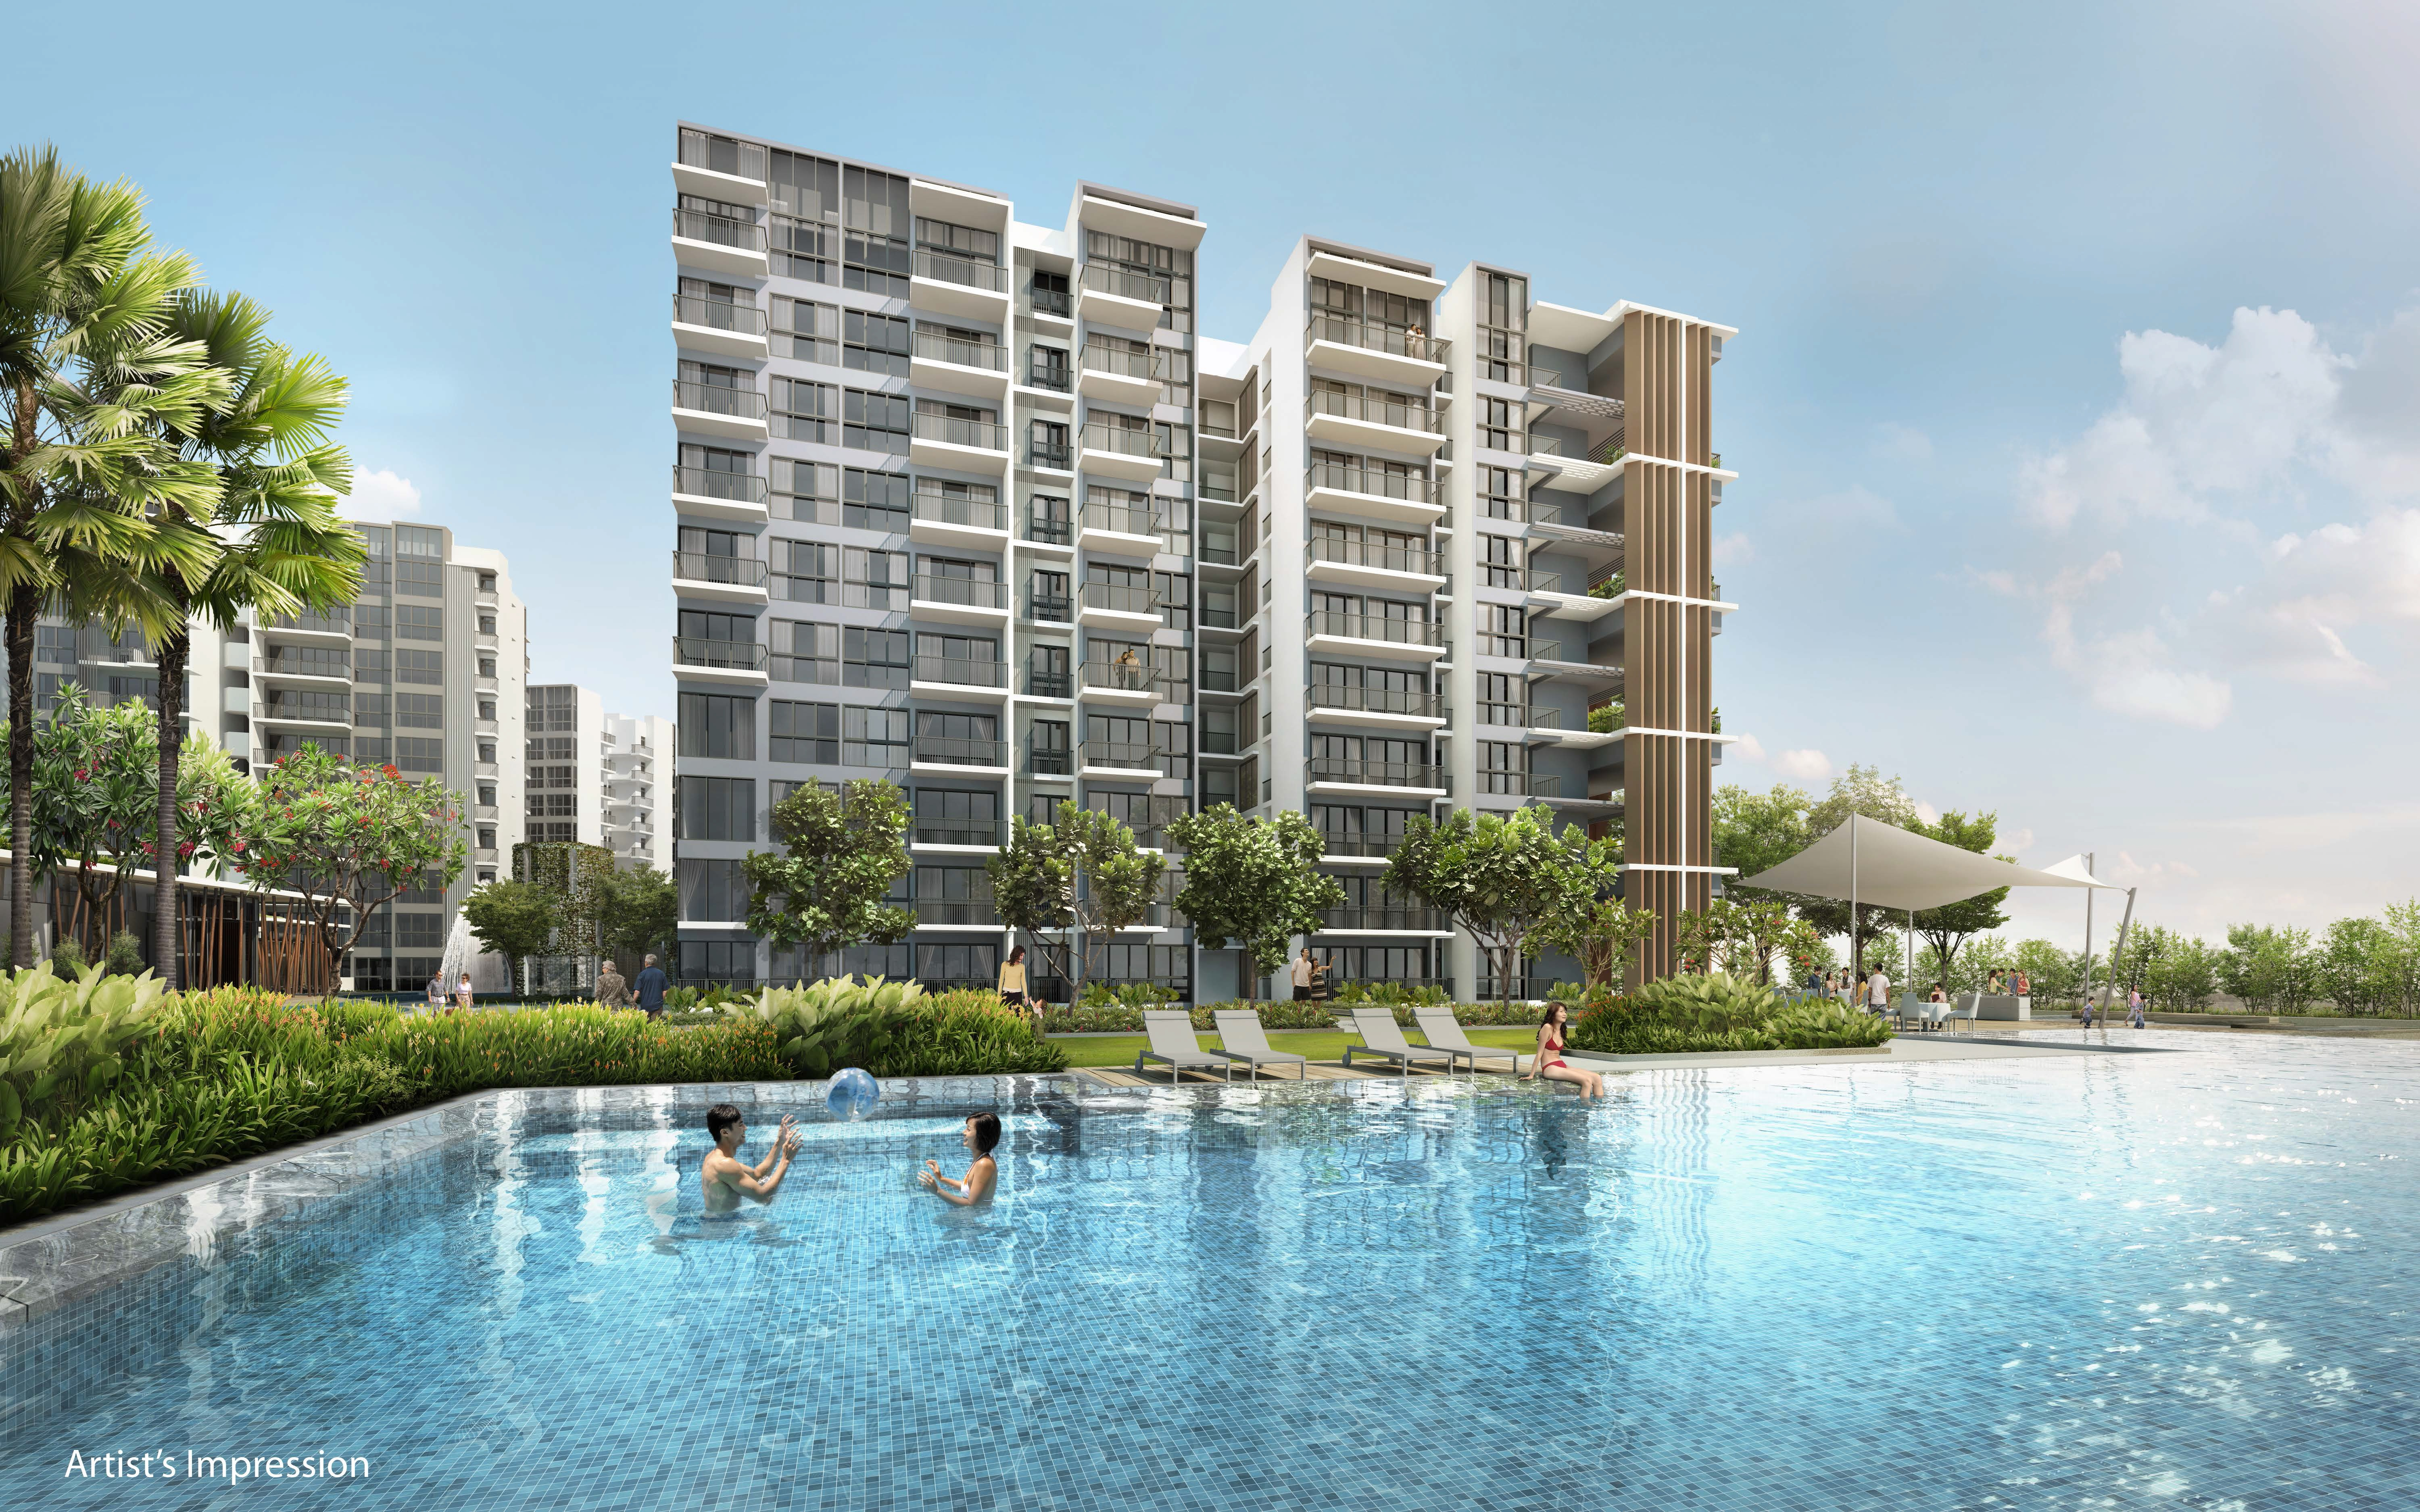 North Park Residences Building Facade with Swimming Pool